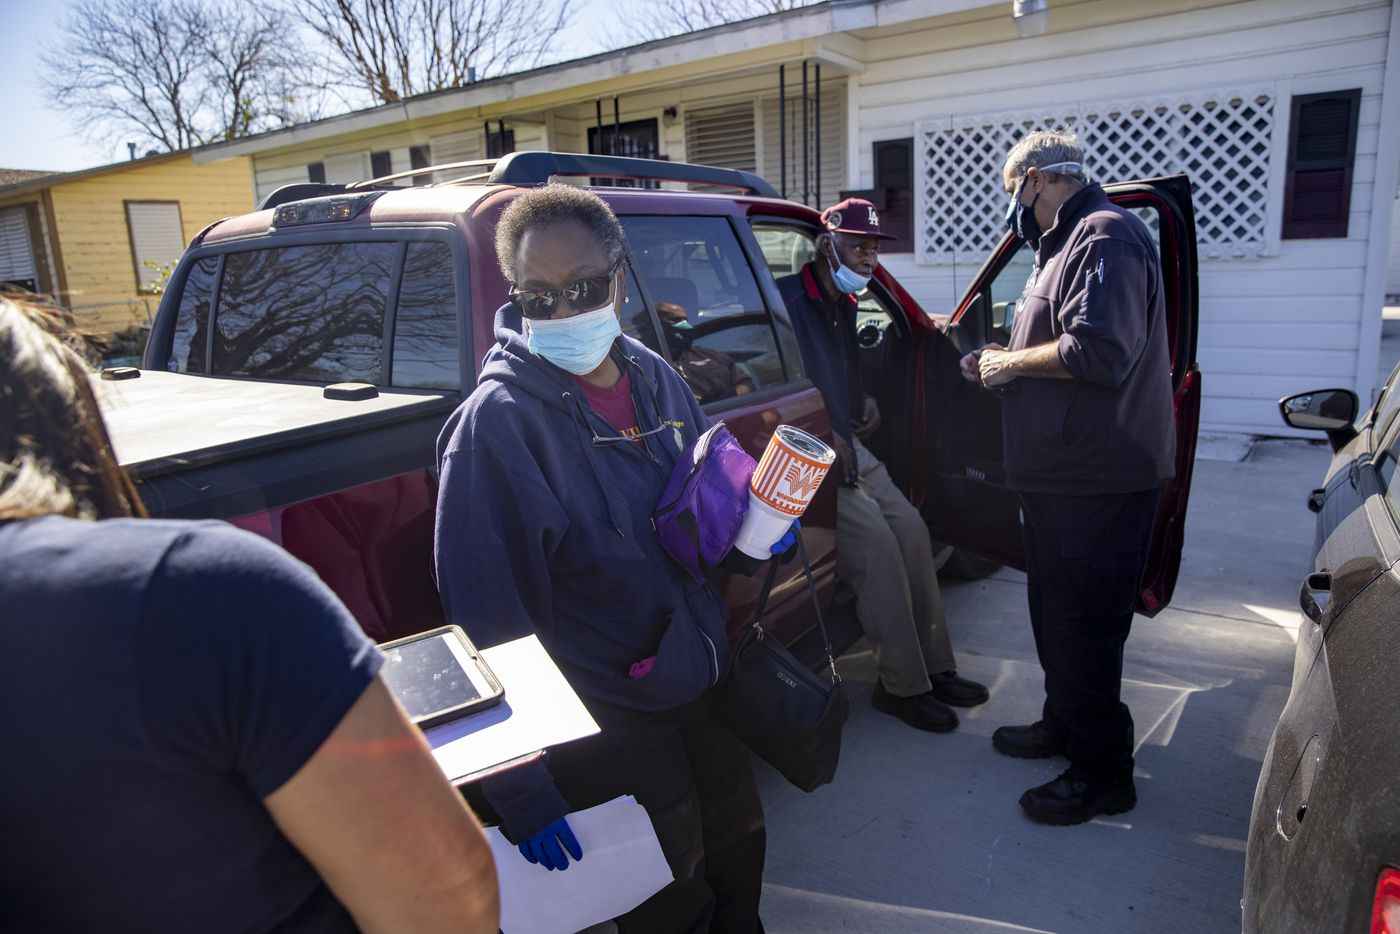 Firefighter I/EMT Kassandra Goce (left) surveys Evelyn Adams, 61, while Firefighter II/EMT Steve Bowers (right) prepares to administer the first dose of the Moderna COVID-19 vaccine to Adams and her father, Sam Johnson, 86, in their driveway in Corpus Christi, Texas, on Monday, Feb. 2, 2021. The Corpus Christi Fire Department has spearheaded a program for administering COVID-19 vaccines to vulnerable elderly populations through utilizing existing rosters kept by the city's Meals on Wheels initiative and those of other civil senior service programs. (Lynda M. González/The Dallas Morning News)